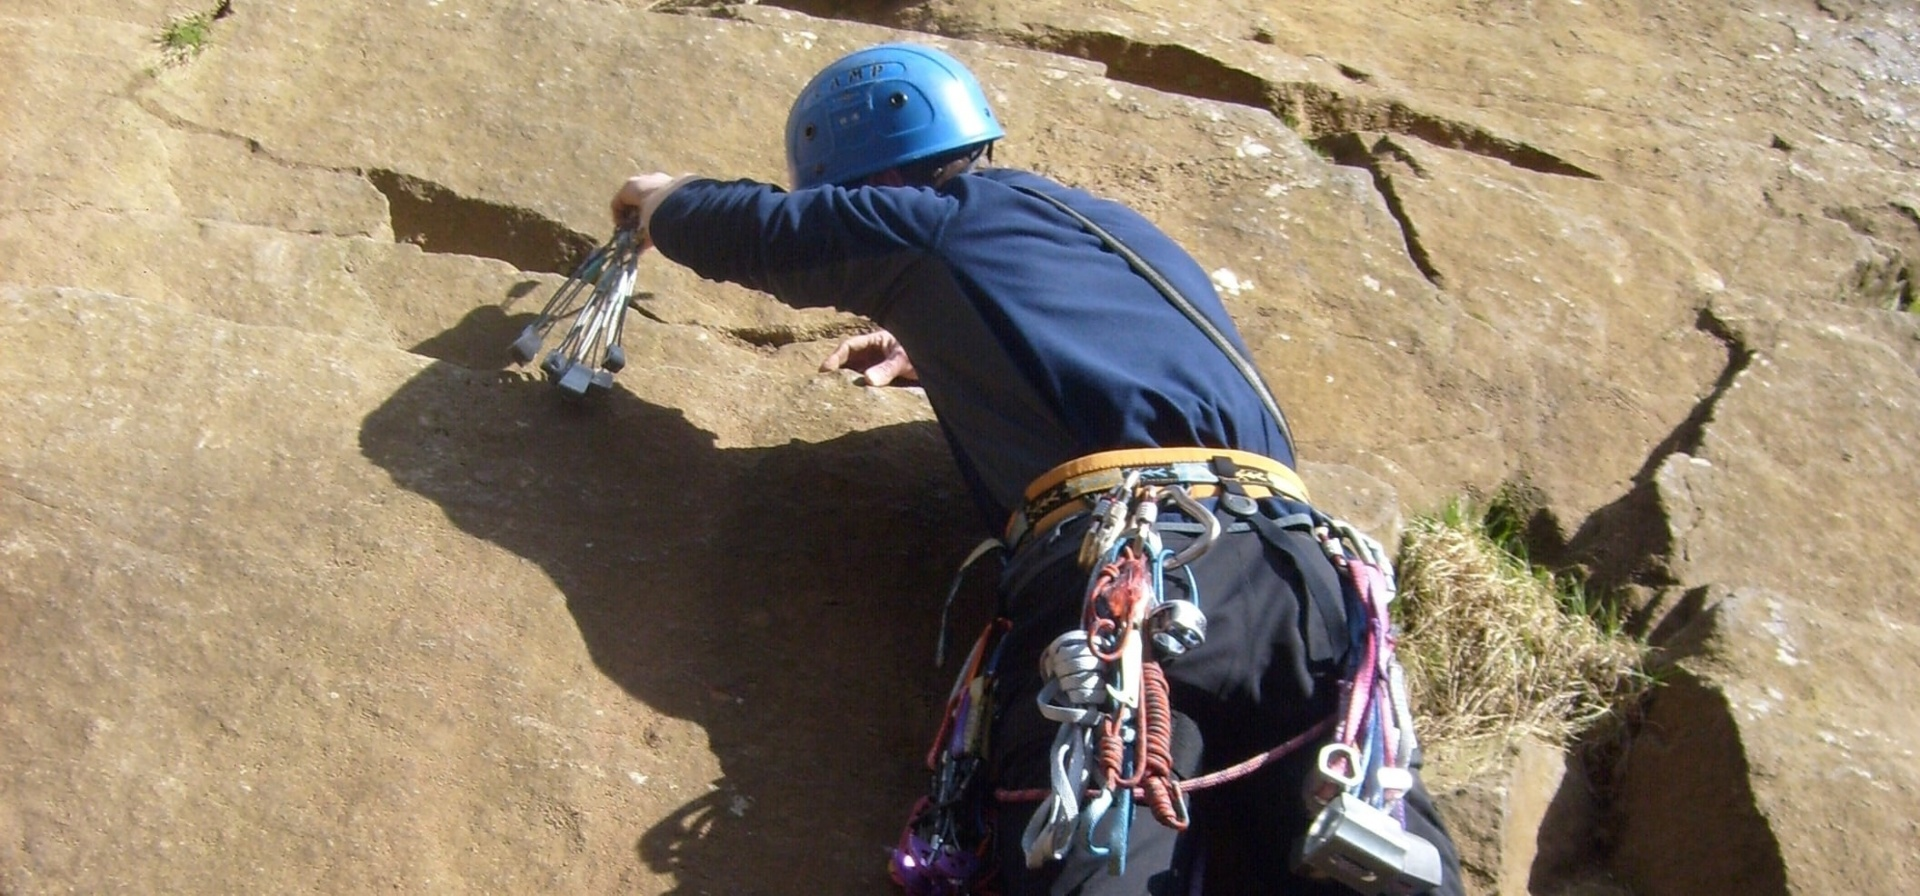 Full Day Peak District Climbing and Abseiling Experience-1